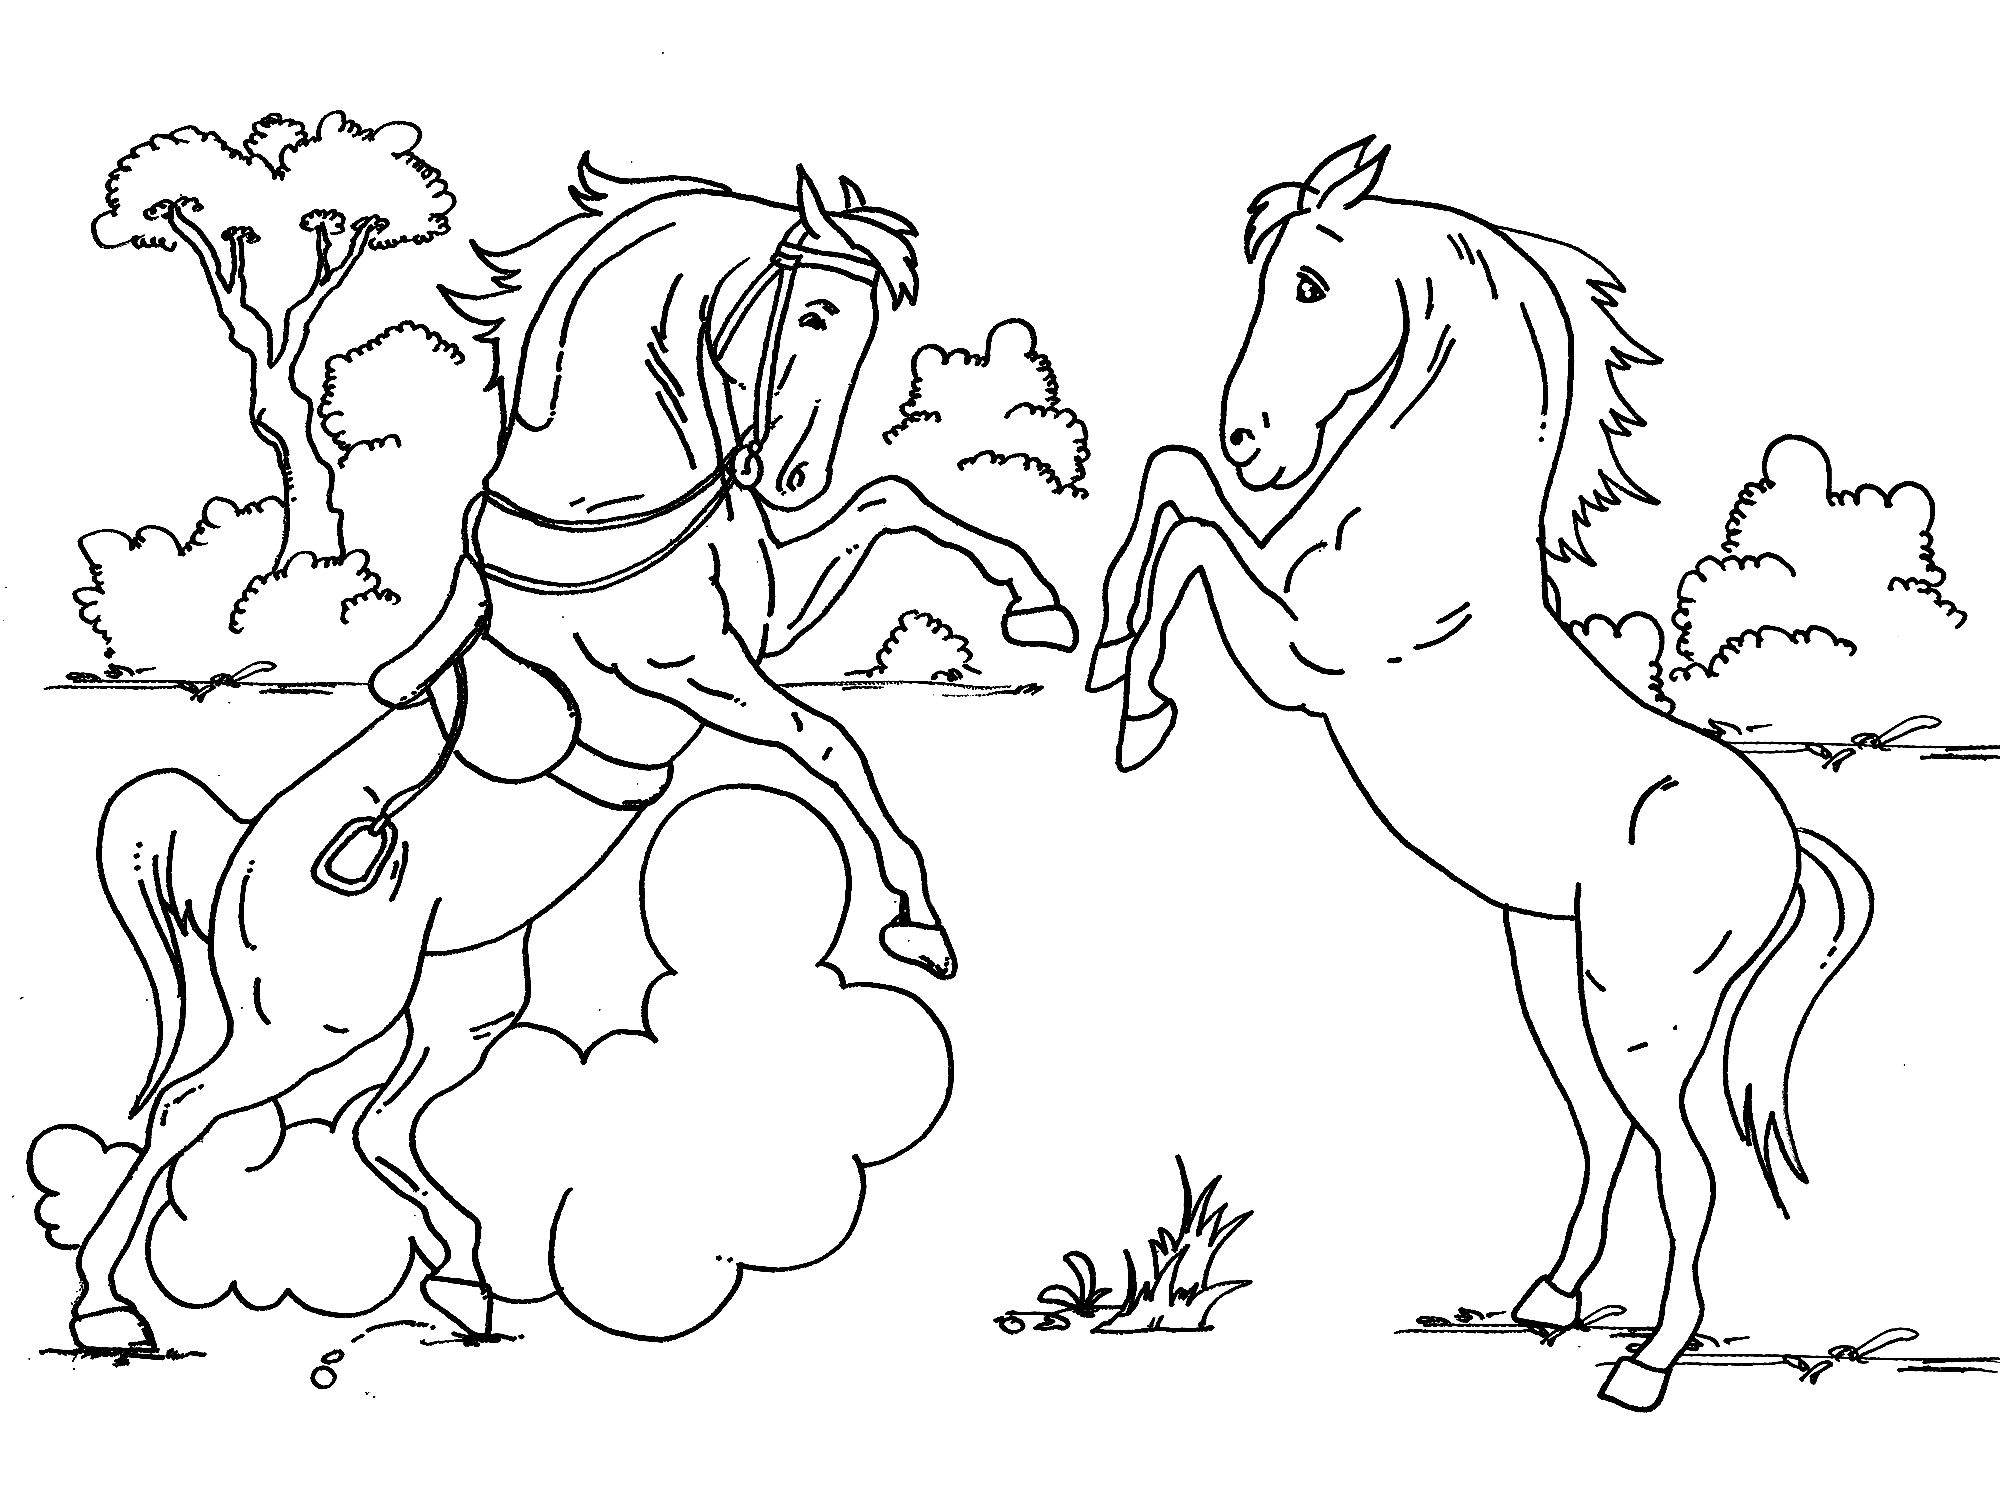 Baby Horse Coloring Pages Gallery Of Horse Detailed Coloring Pages Gallery